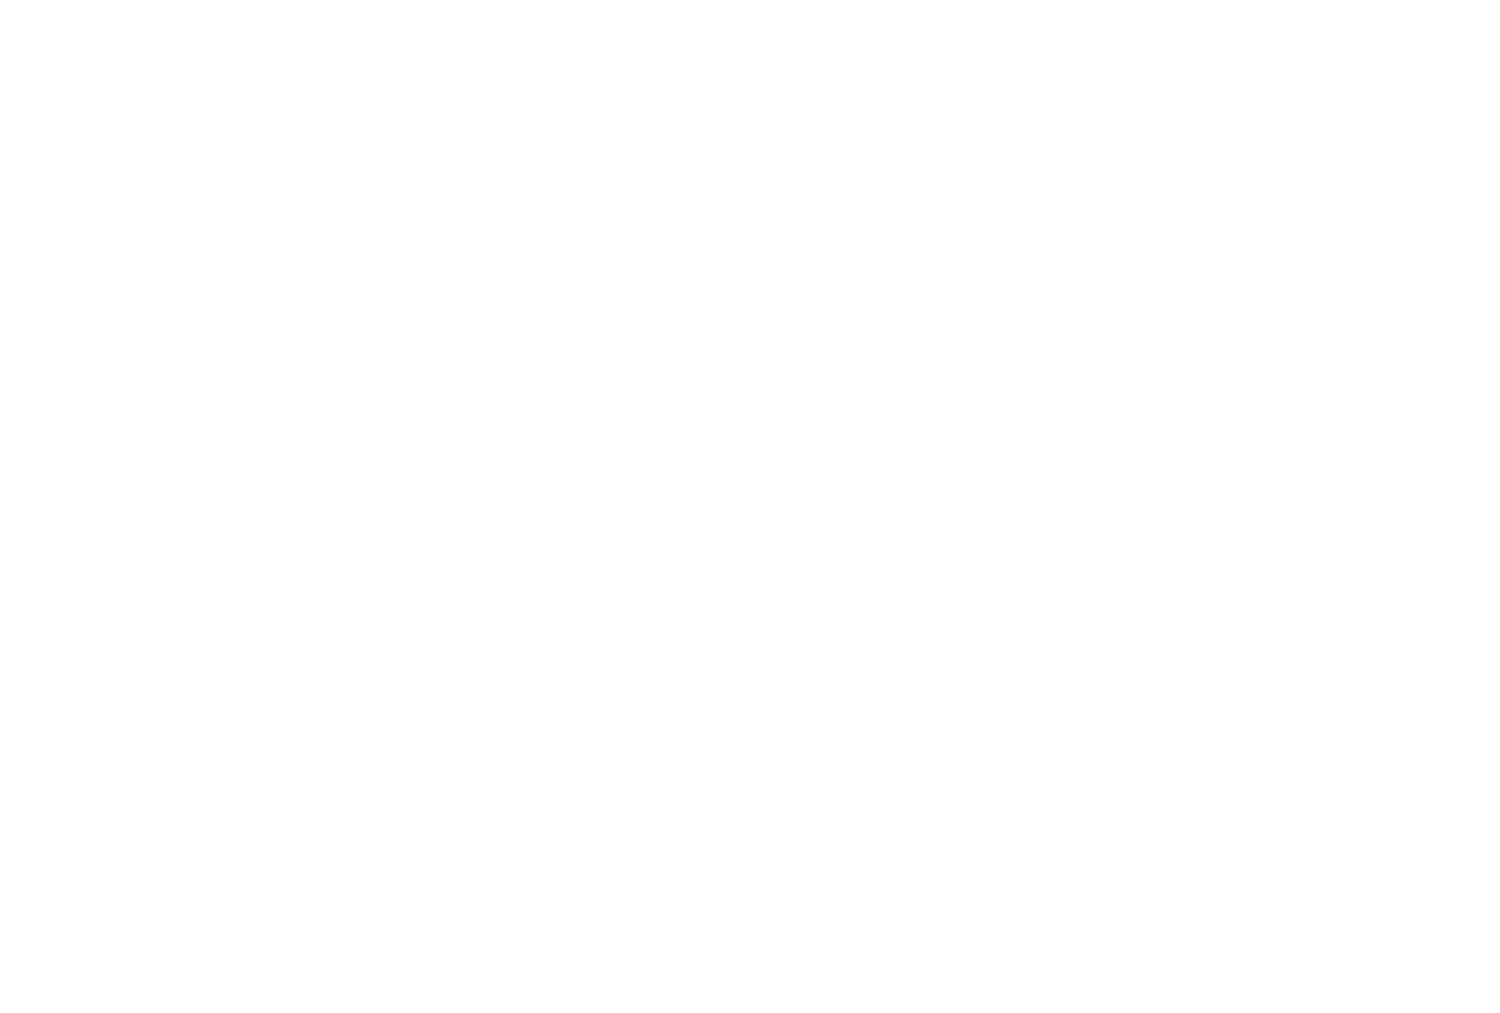 Lorelee Lane Farm